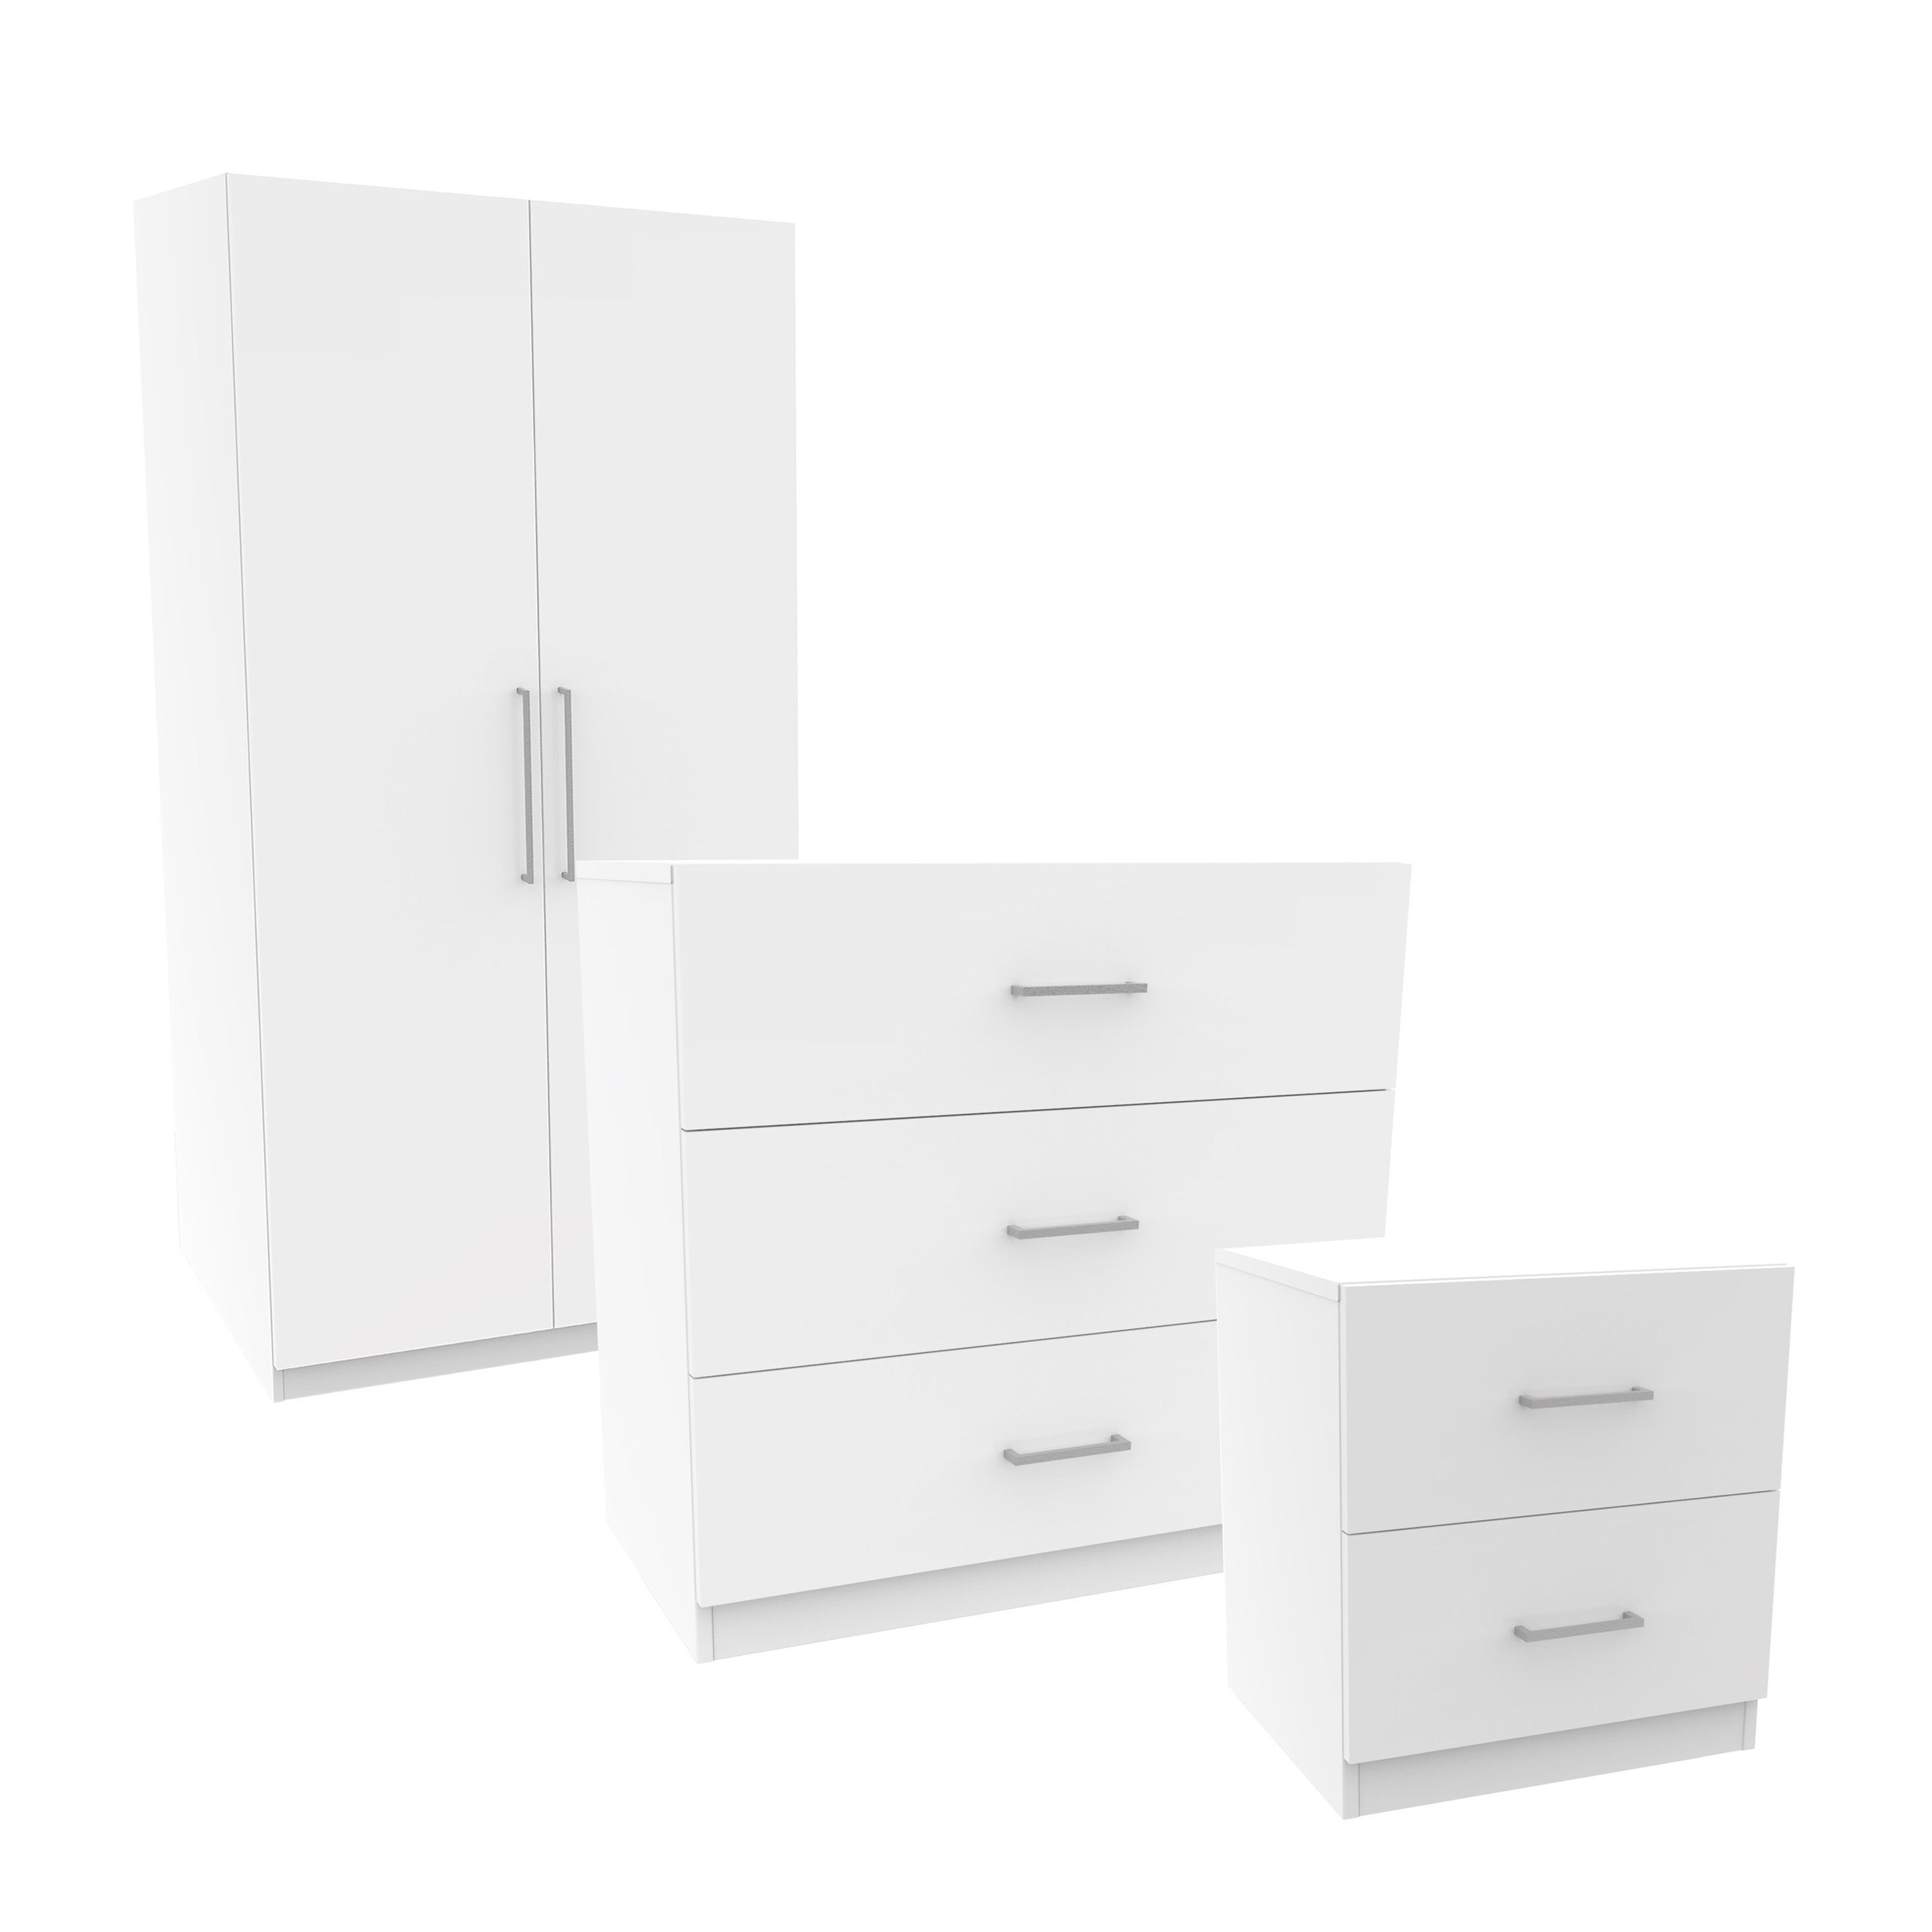 Darwin white 3 piece bedroom furniture set departments for B q bedroom furniture sets